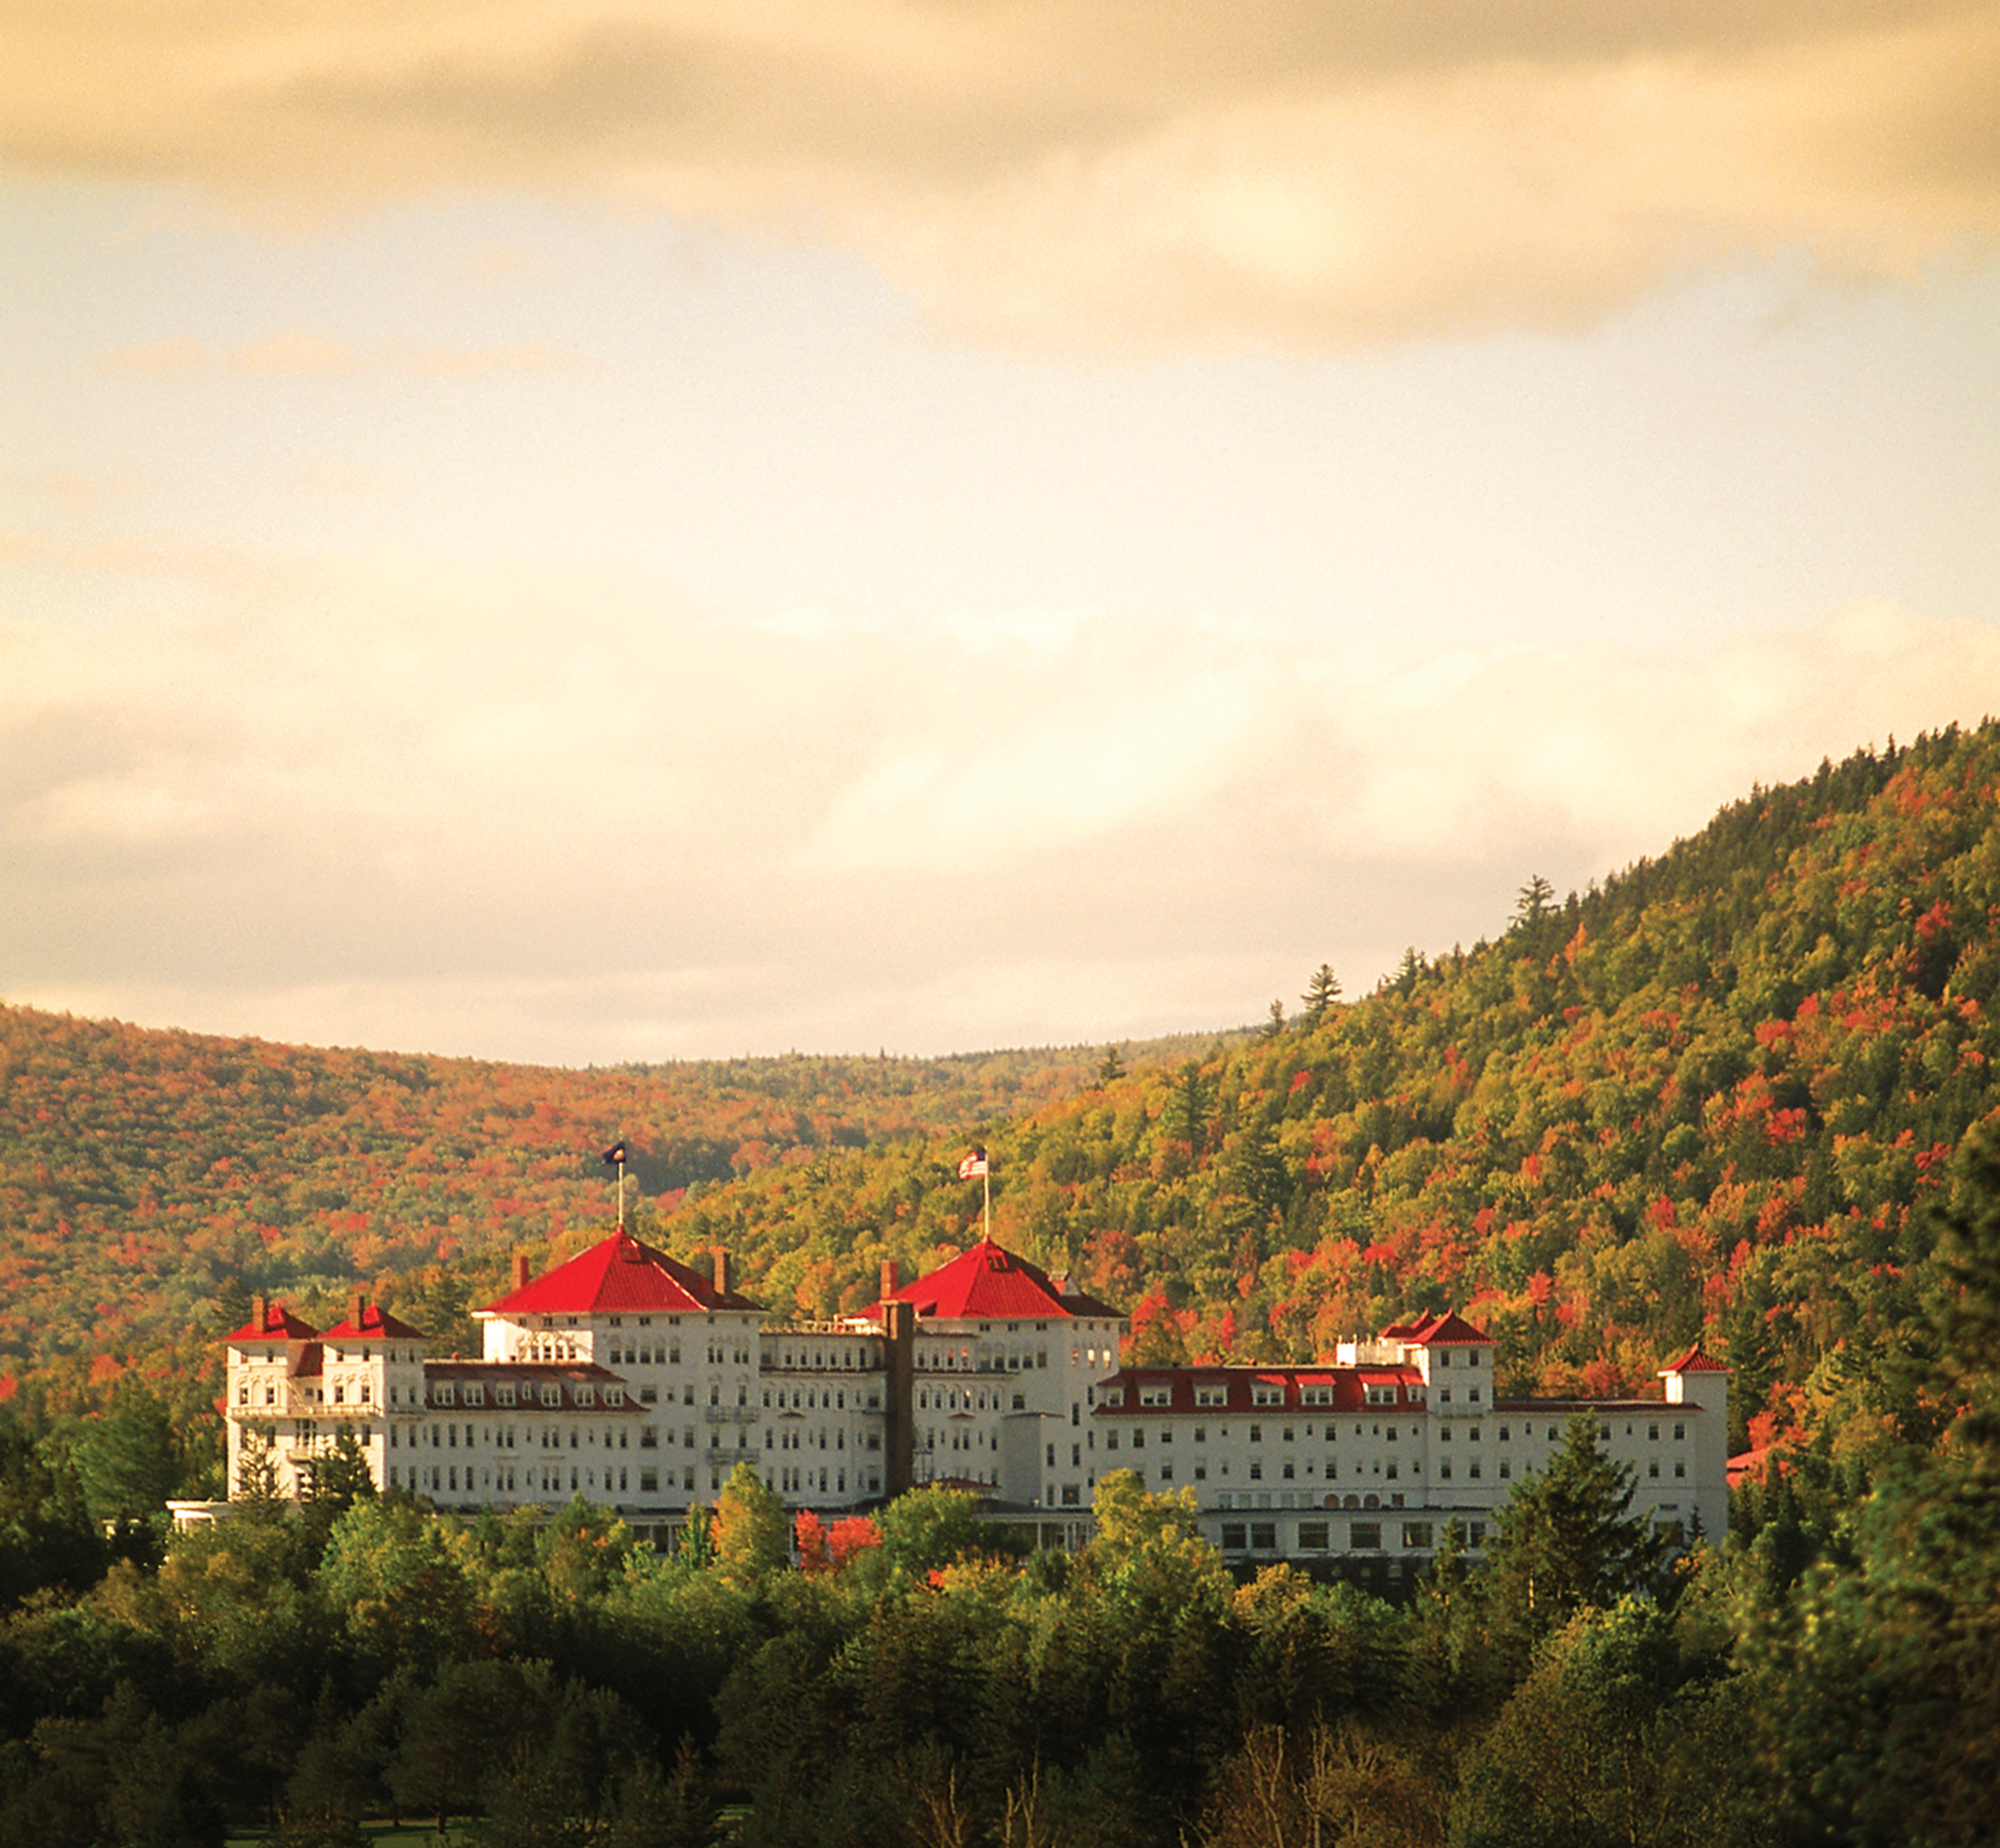 crop nh wedding hotels minister new hampshire img locations the lincoln jpg of